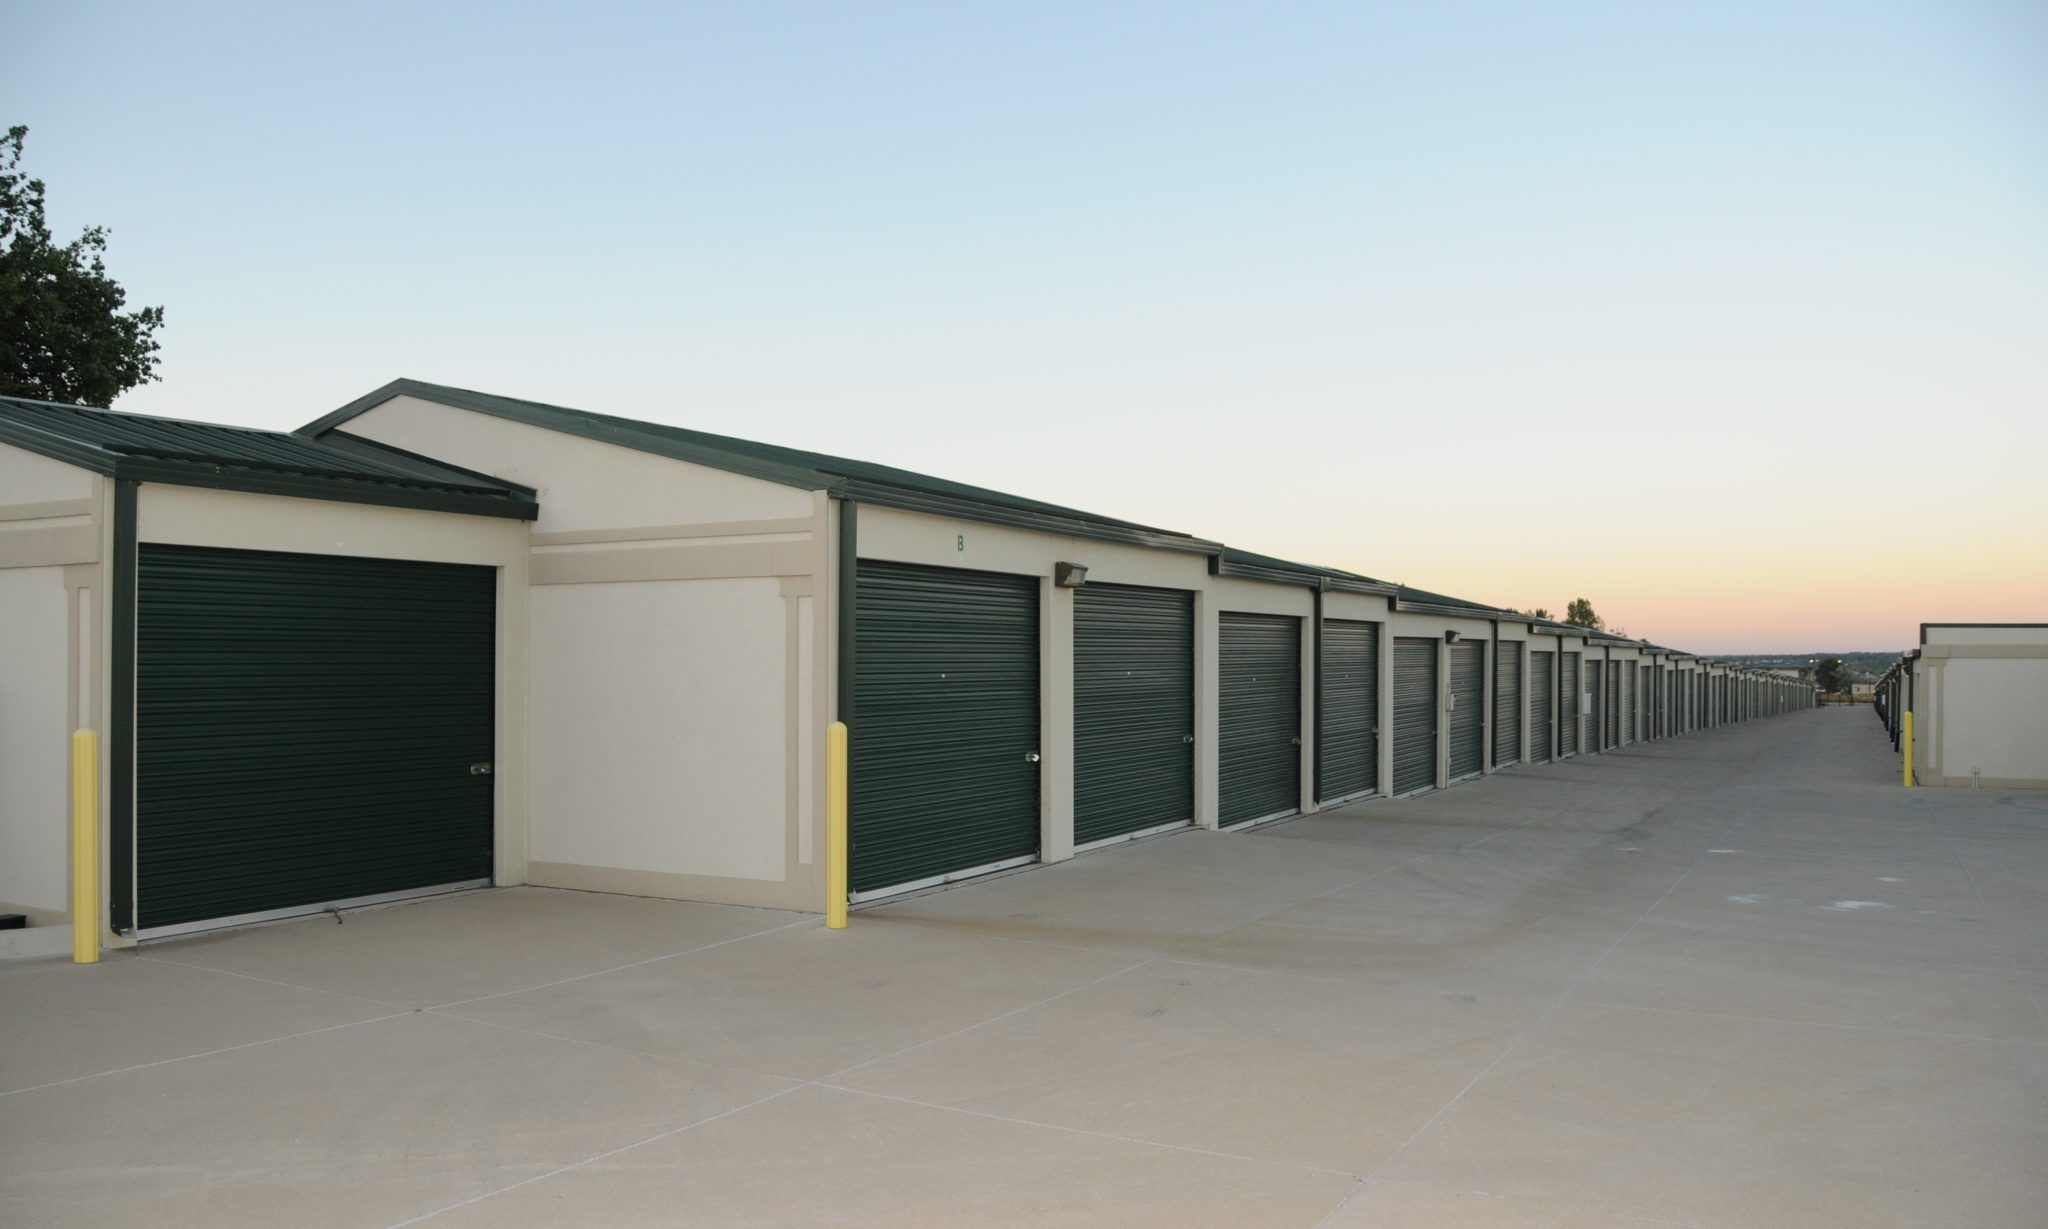 Rv storage buildings self storage buildings for Rb storage